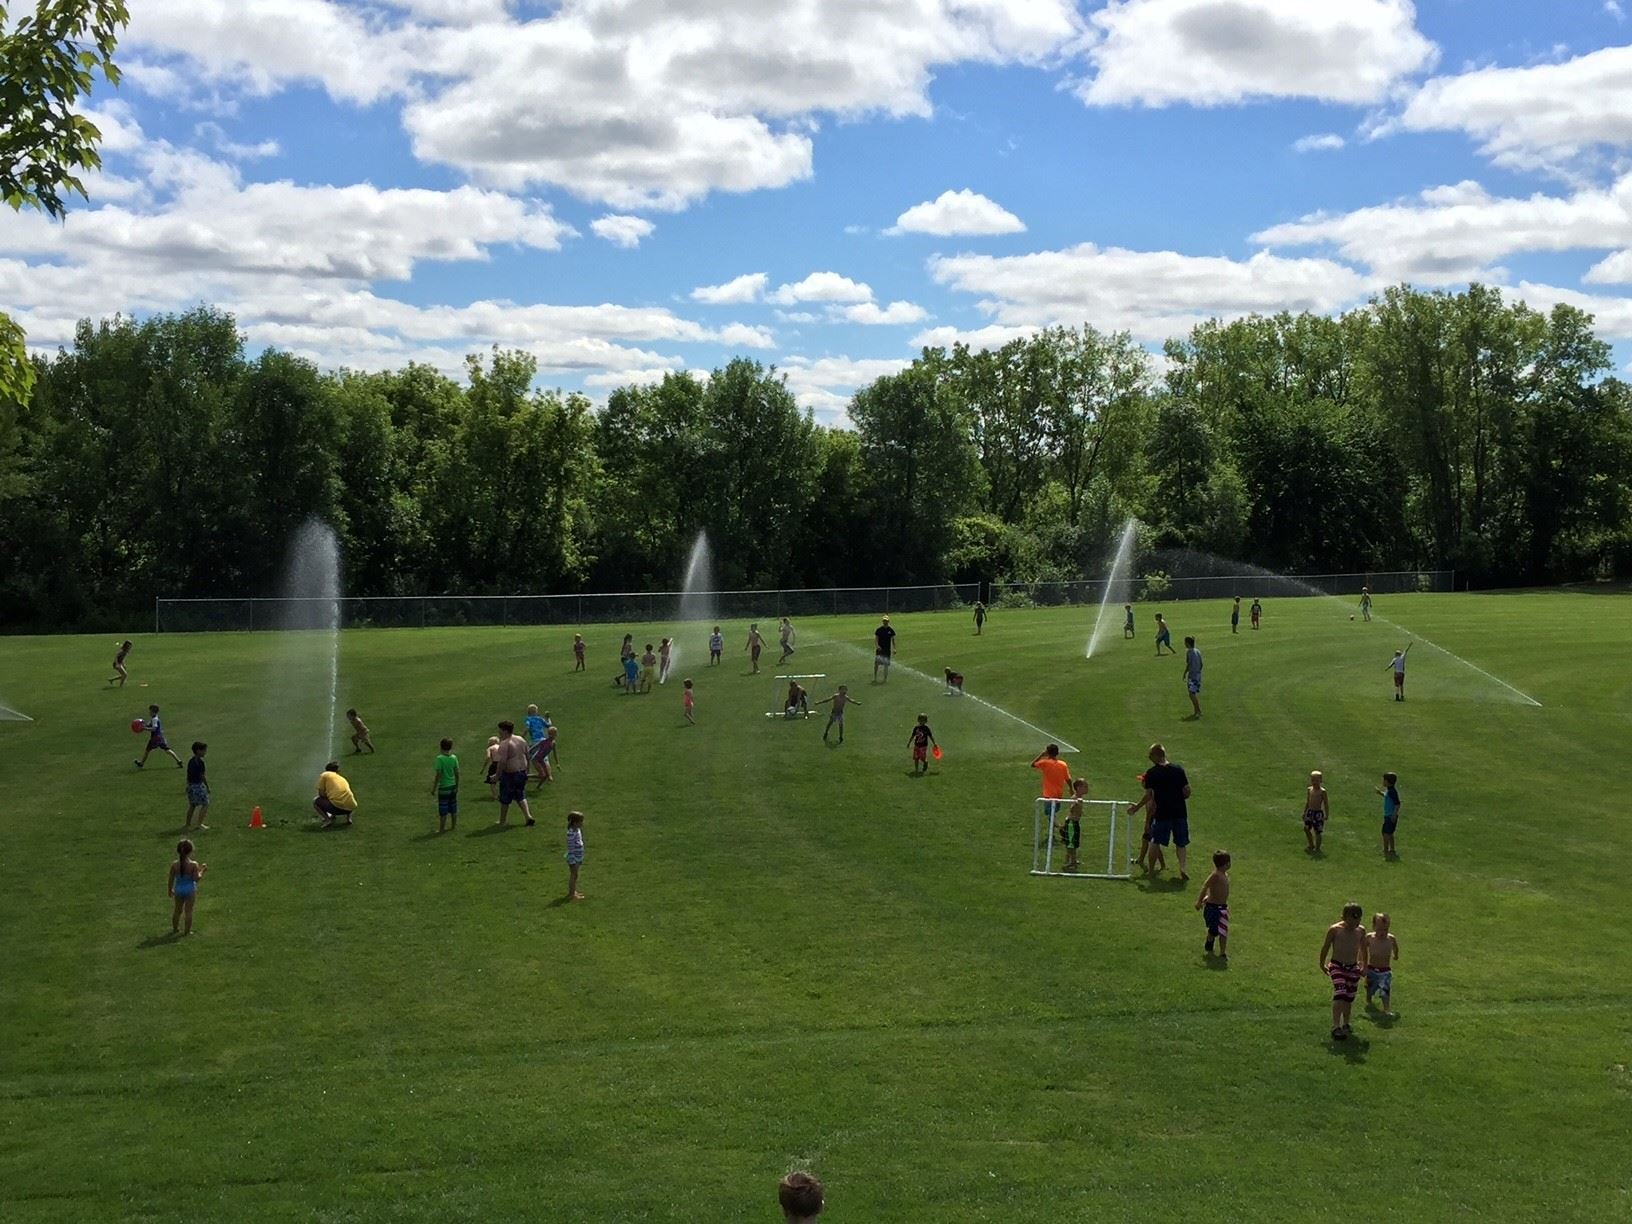 Kids playing in sprinklers at Cummings